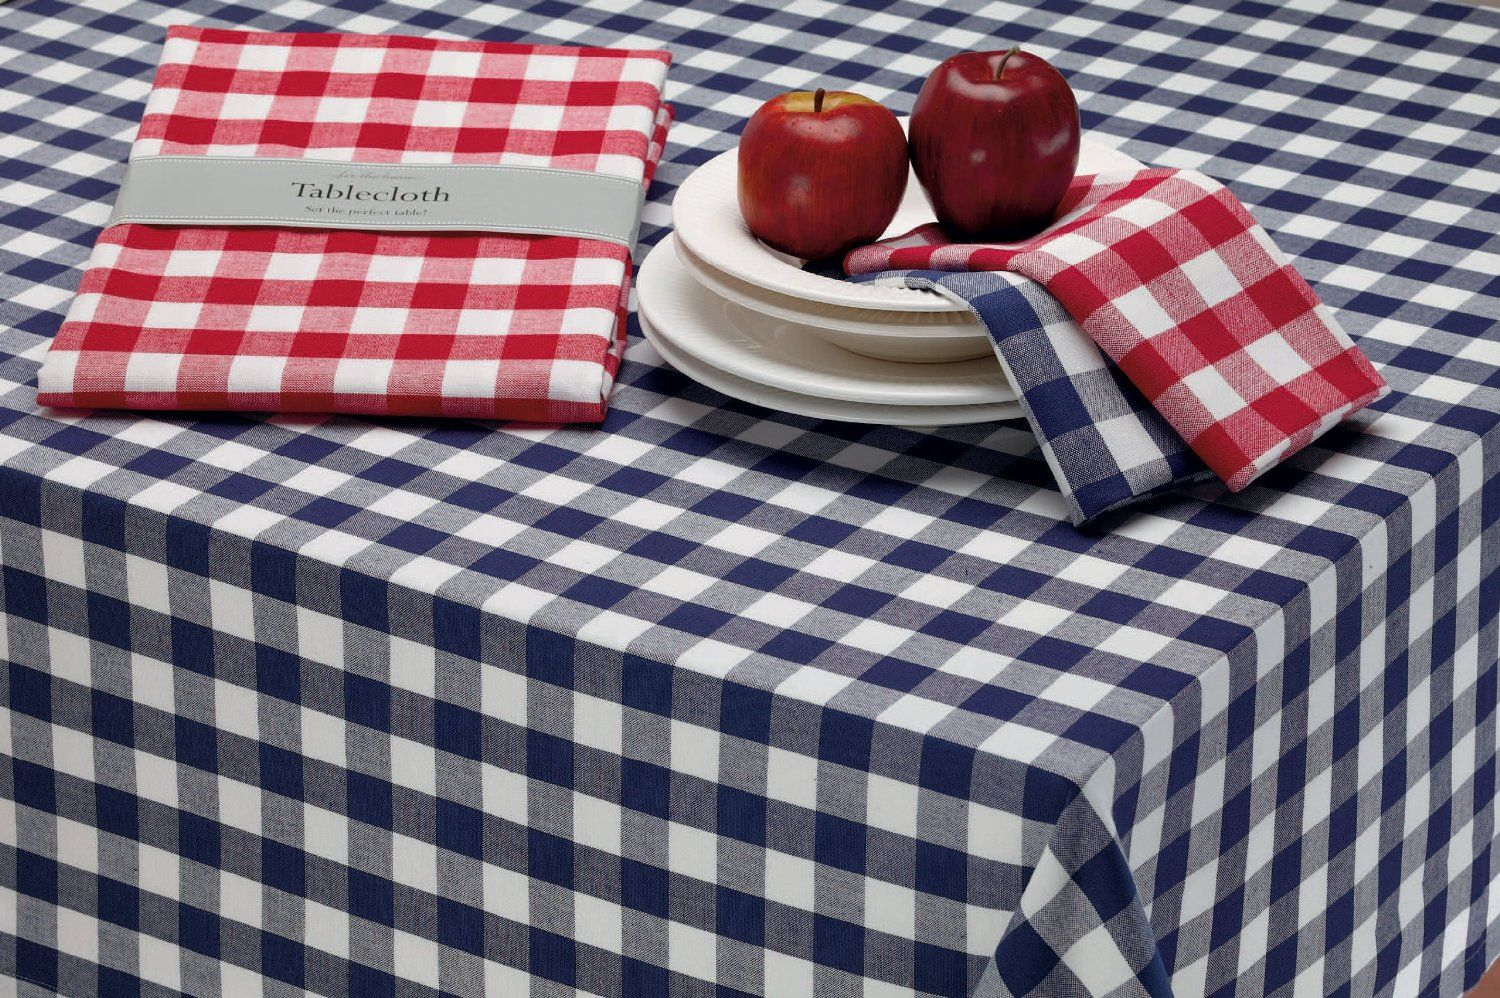 "Amazon.co.jp: [デザインインポート] DII テーブルクロス 100% コットン レッド ギンガムチェック DII 100% Cotton Machine Washable Tablecloth Red Check 60 x 84""【並行輸入品】: ホーム&キッチン..."